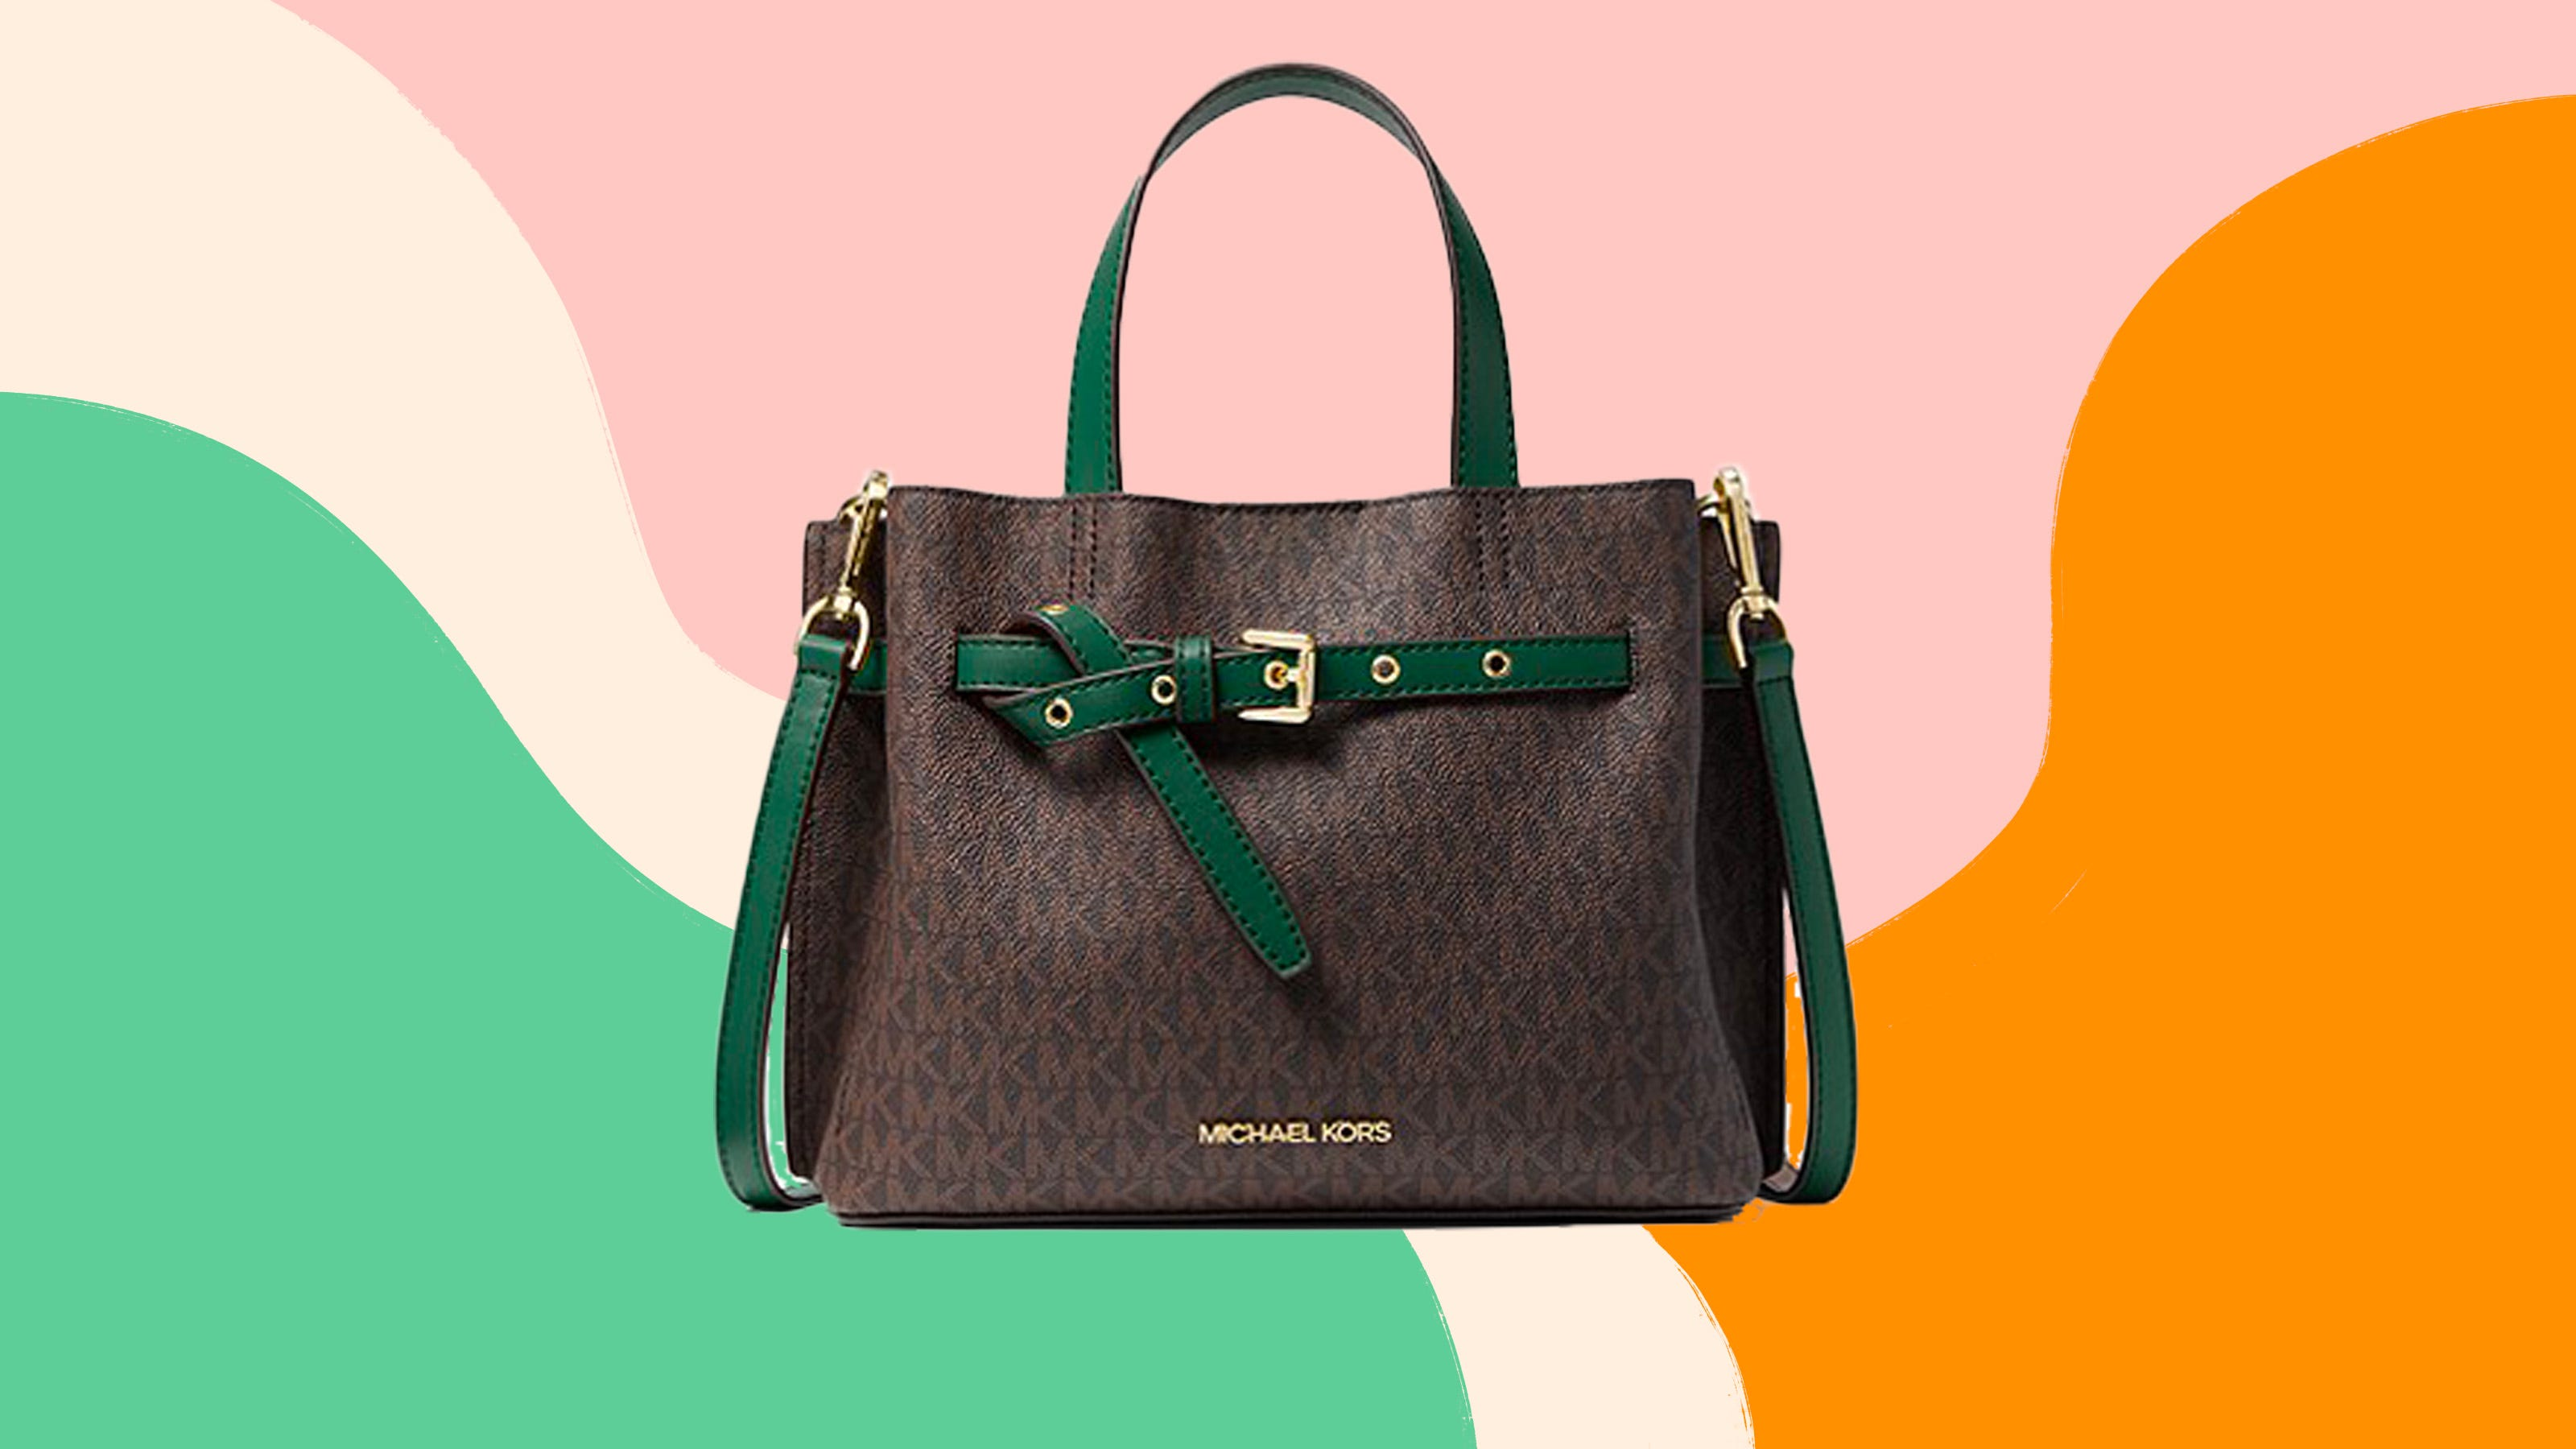 Save hundreds on a Michael Kors purse now during the brand's epic fall sale